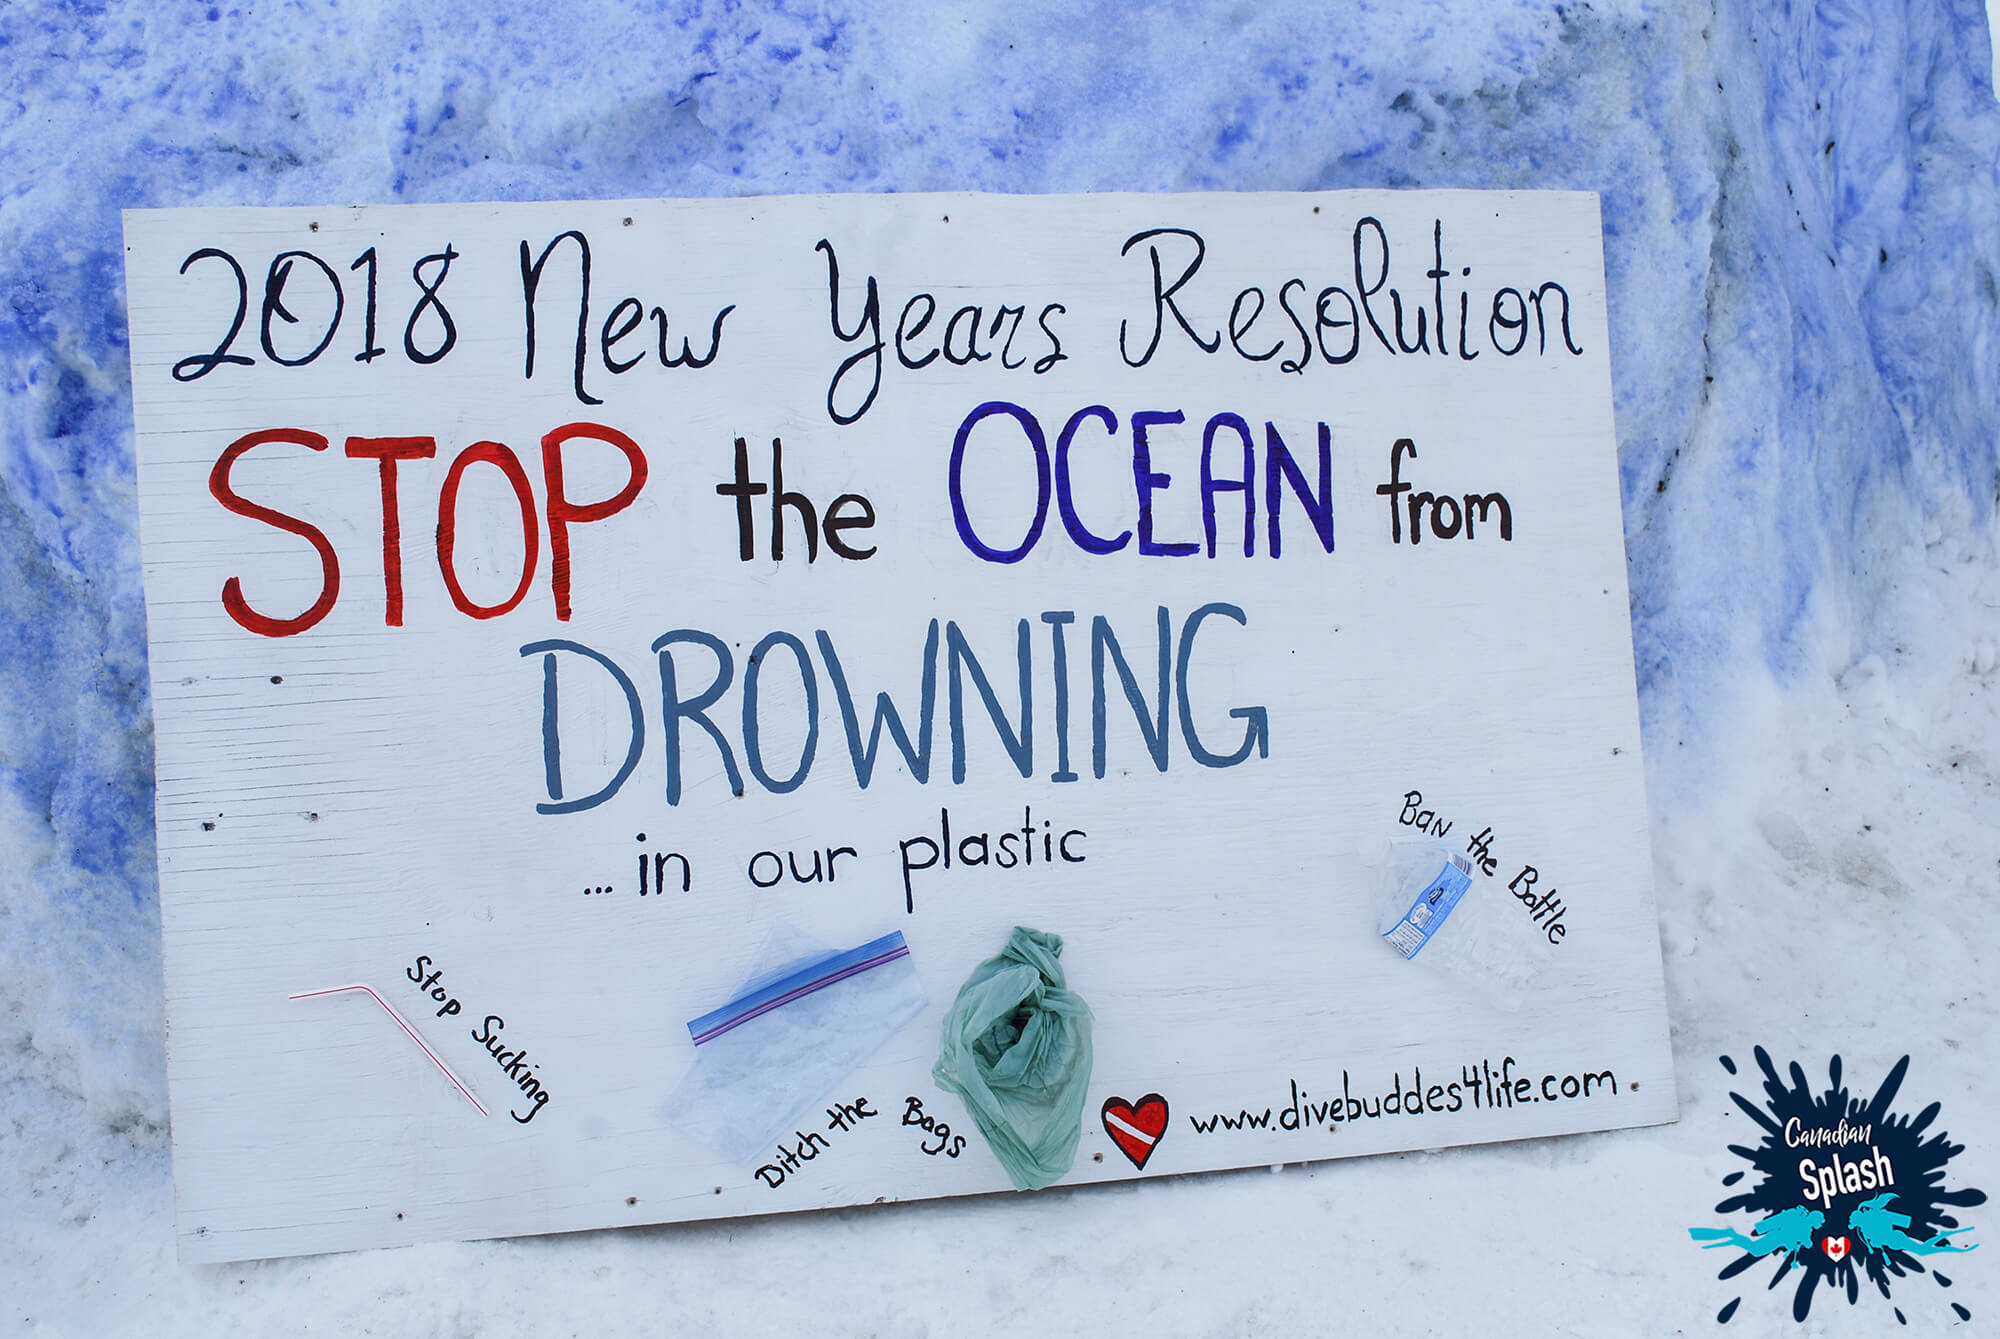 A Close Up Of The Plastic Pollution Sign Made To Raise Awareness On Pollution In Our Lakes, Rivers And Oceans, Canada Underwater